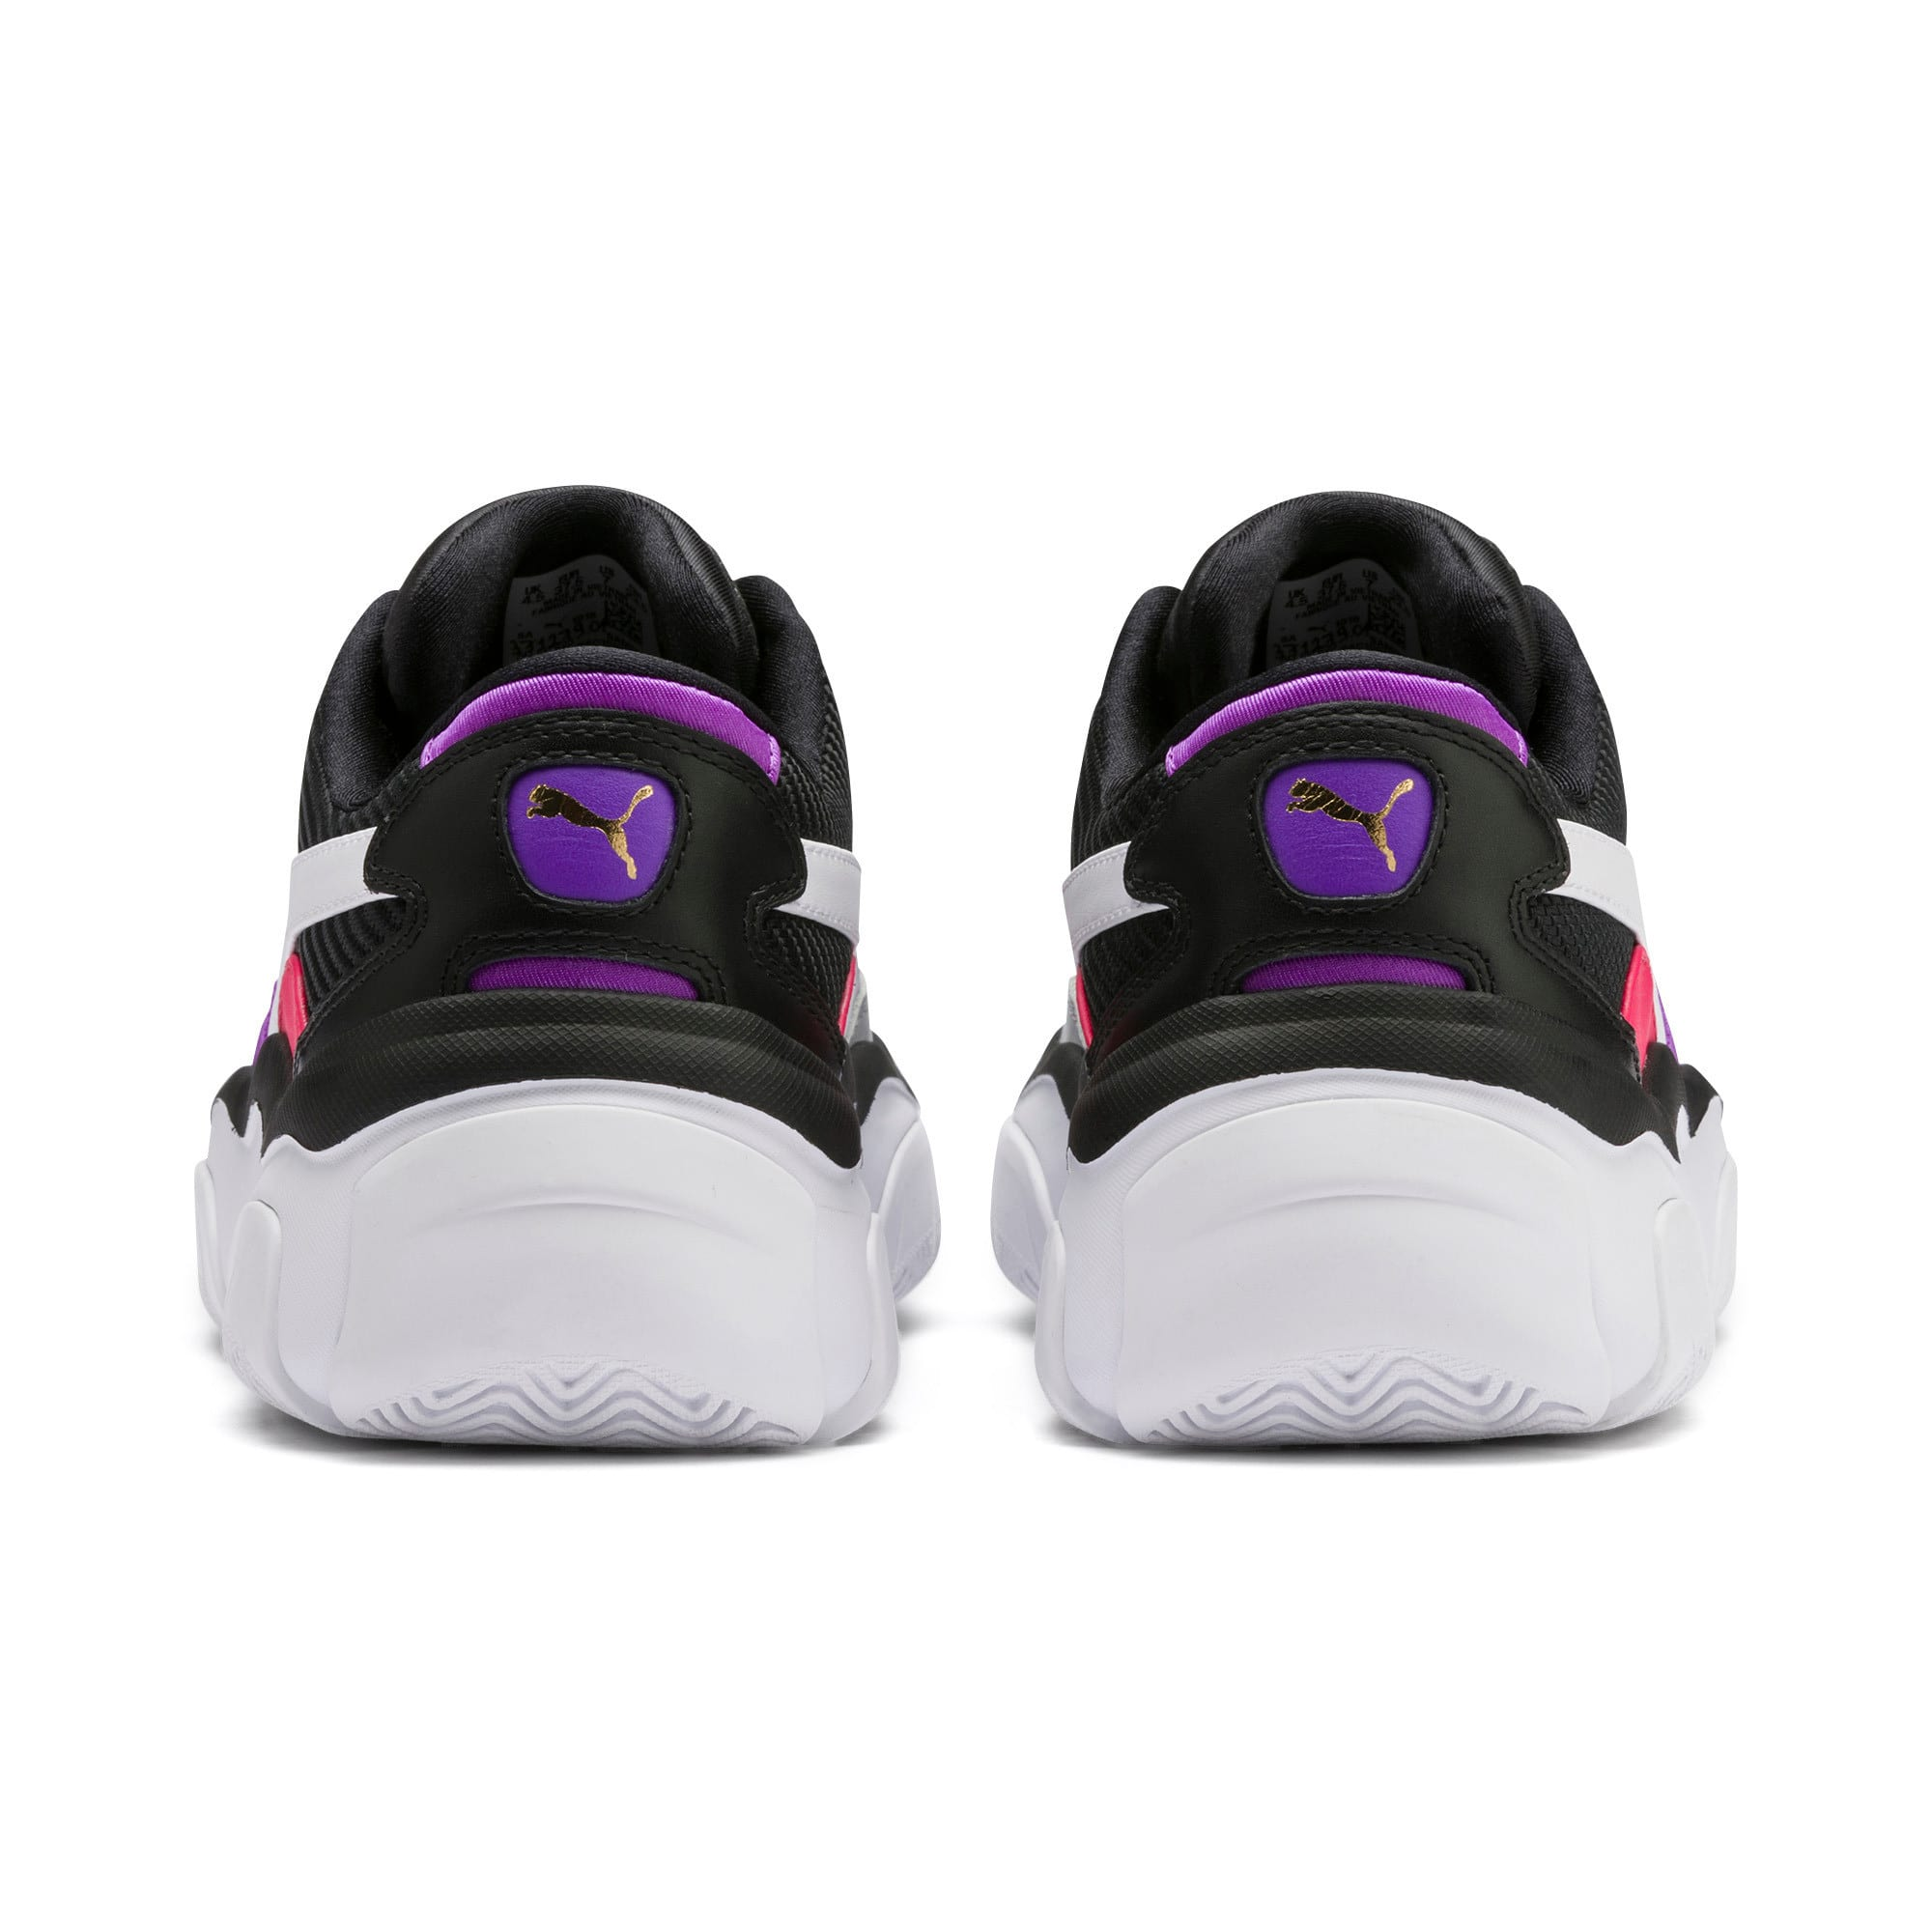 Thumbnail 4 of STORM.Y Damen Sneaker, Puma Black-Gray Violet, medium